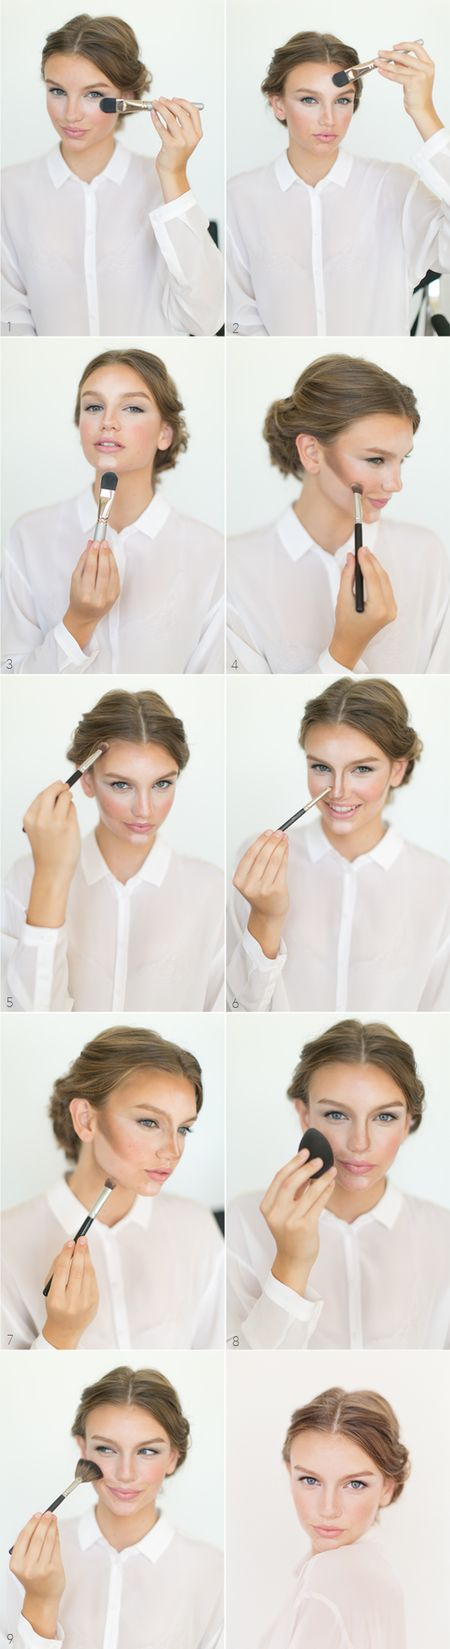 Contouring & Highlight Tutorial #makeup #beauty #countouring #beautytips #beautytutorial - bellashoot.com